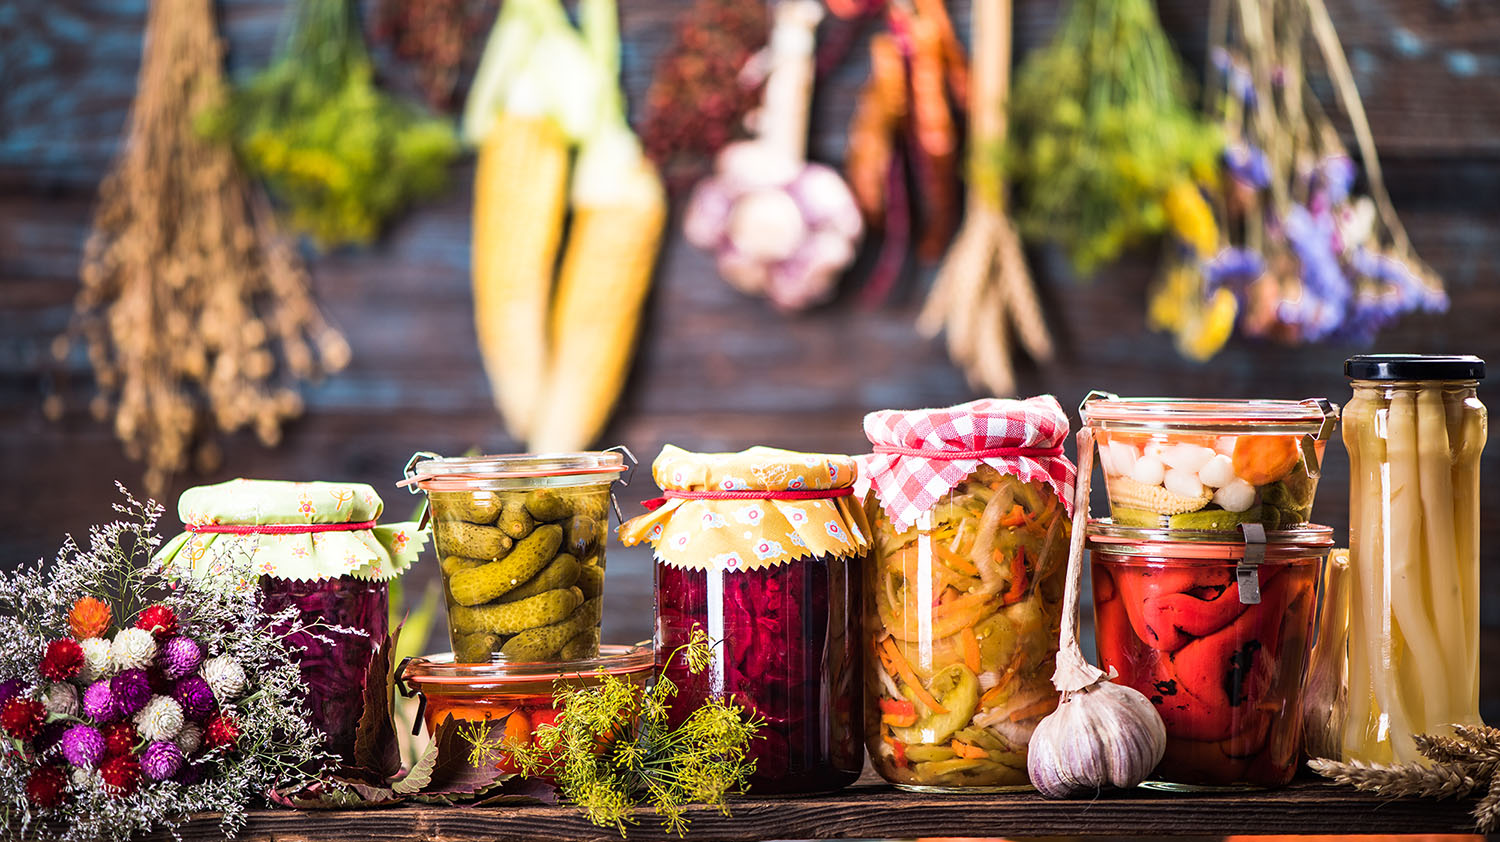 Development of fermented flavour profiles